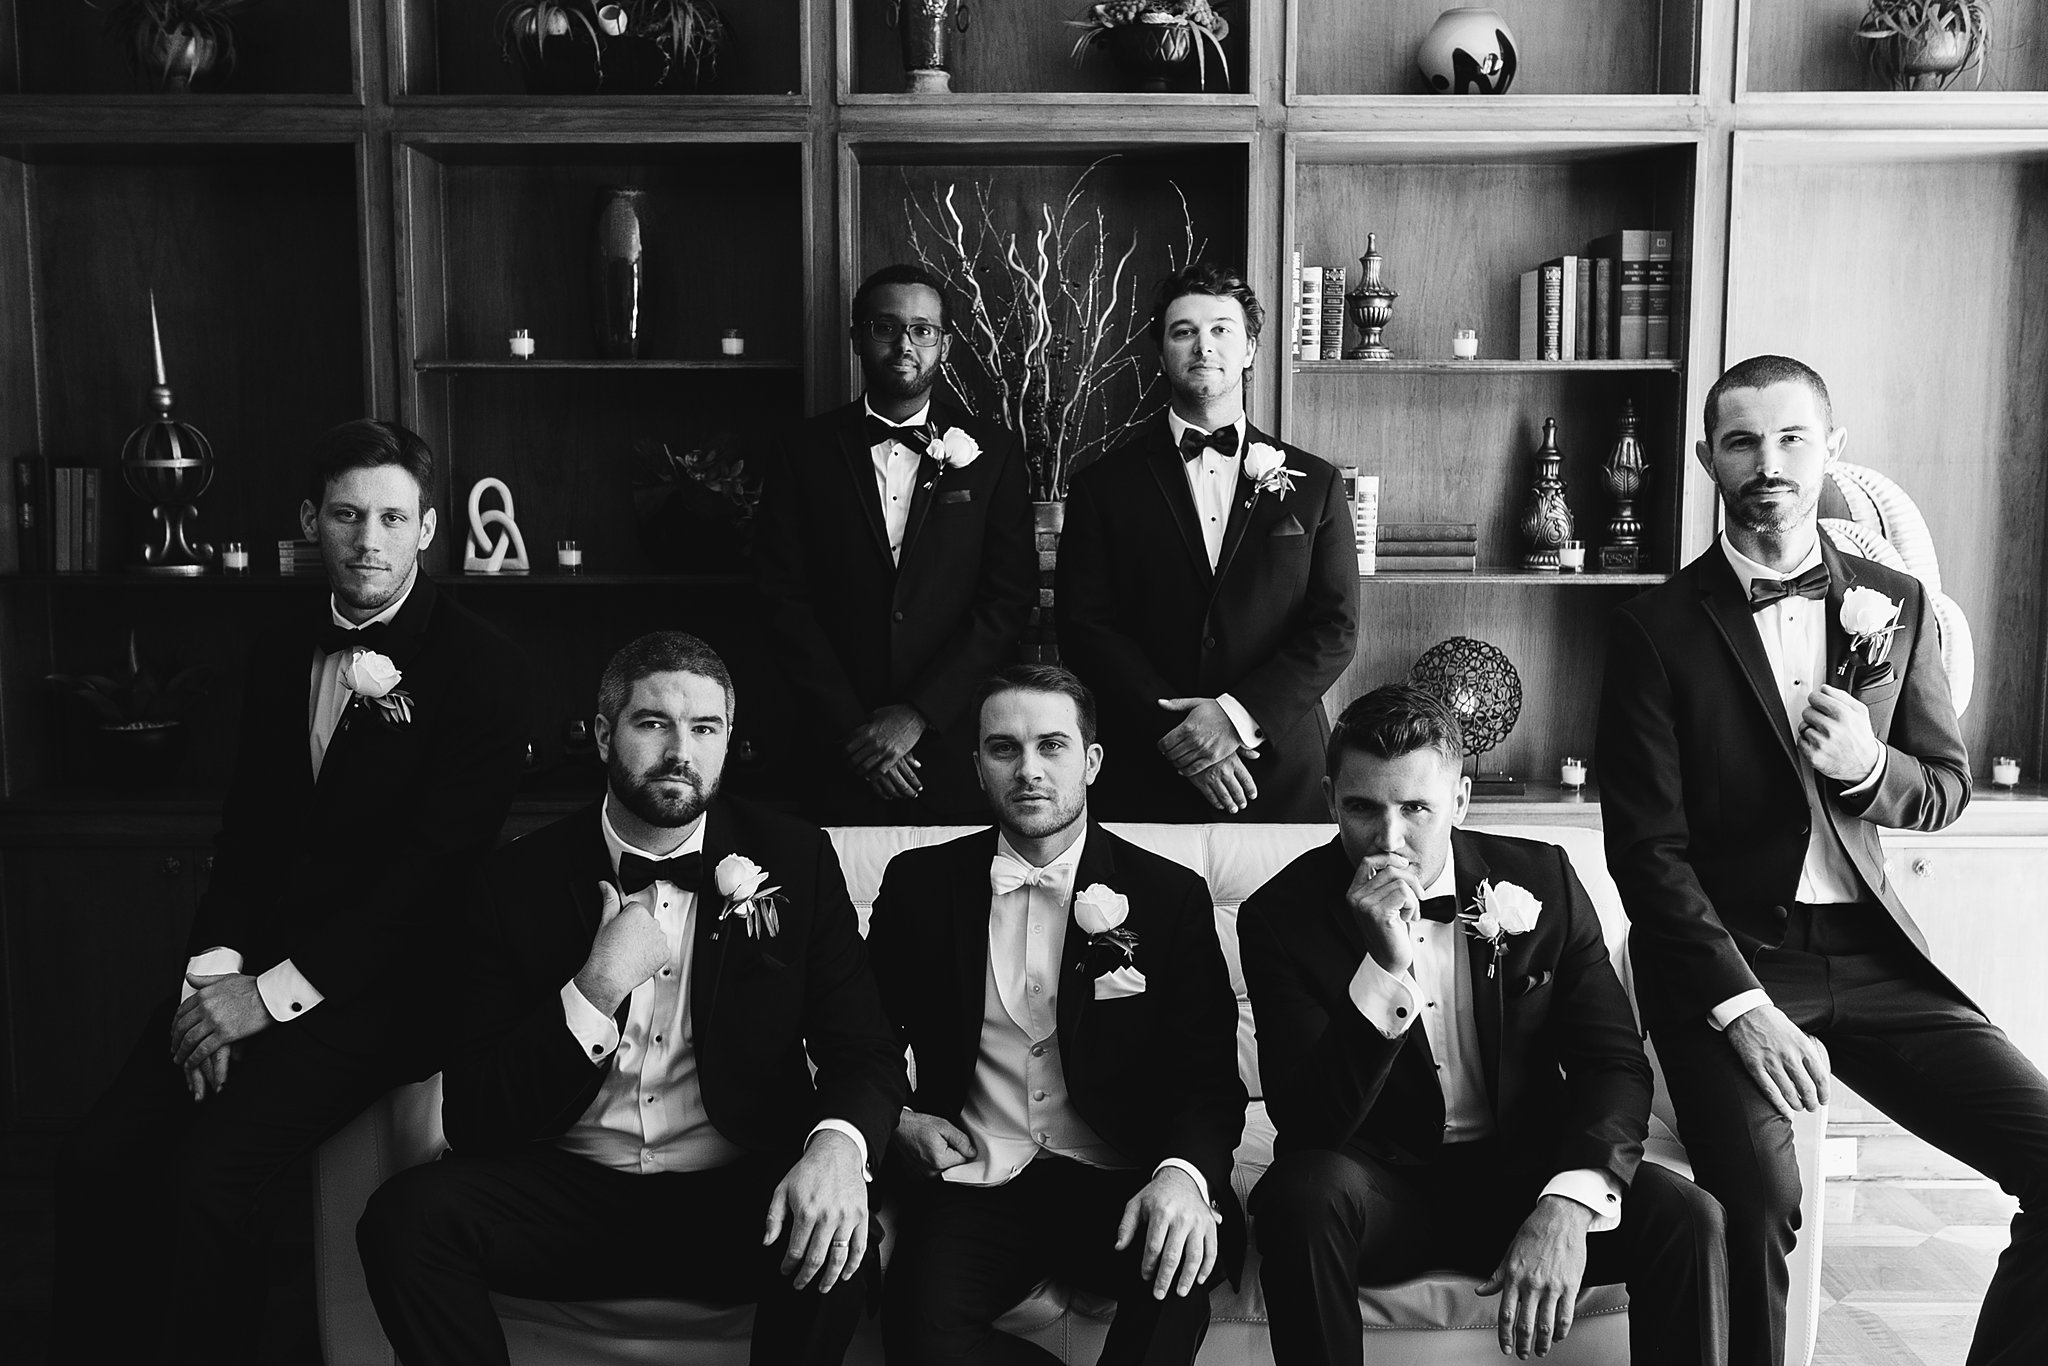 black and white grooms and groomsmen picture